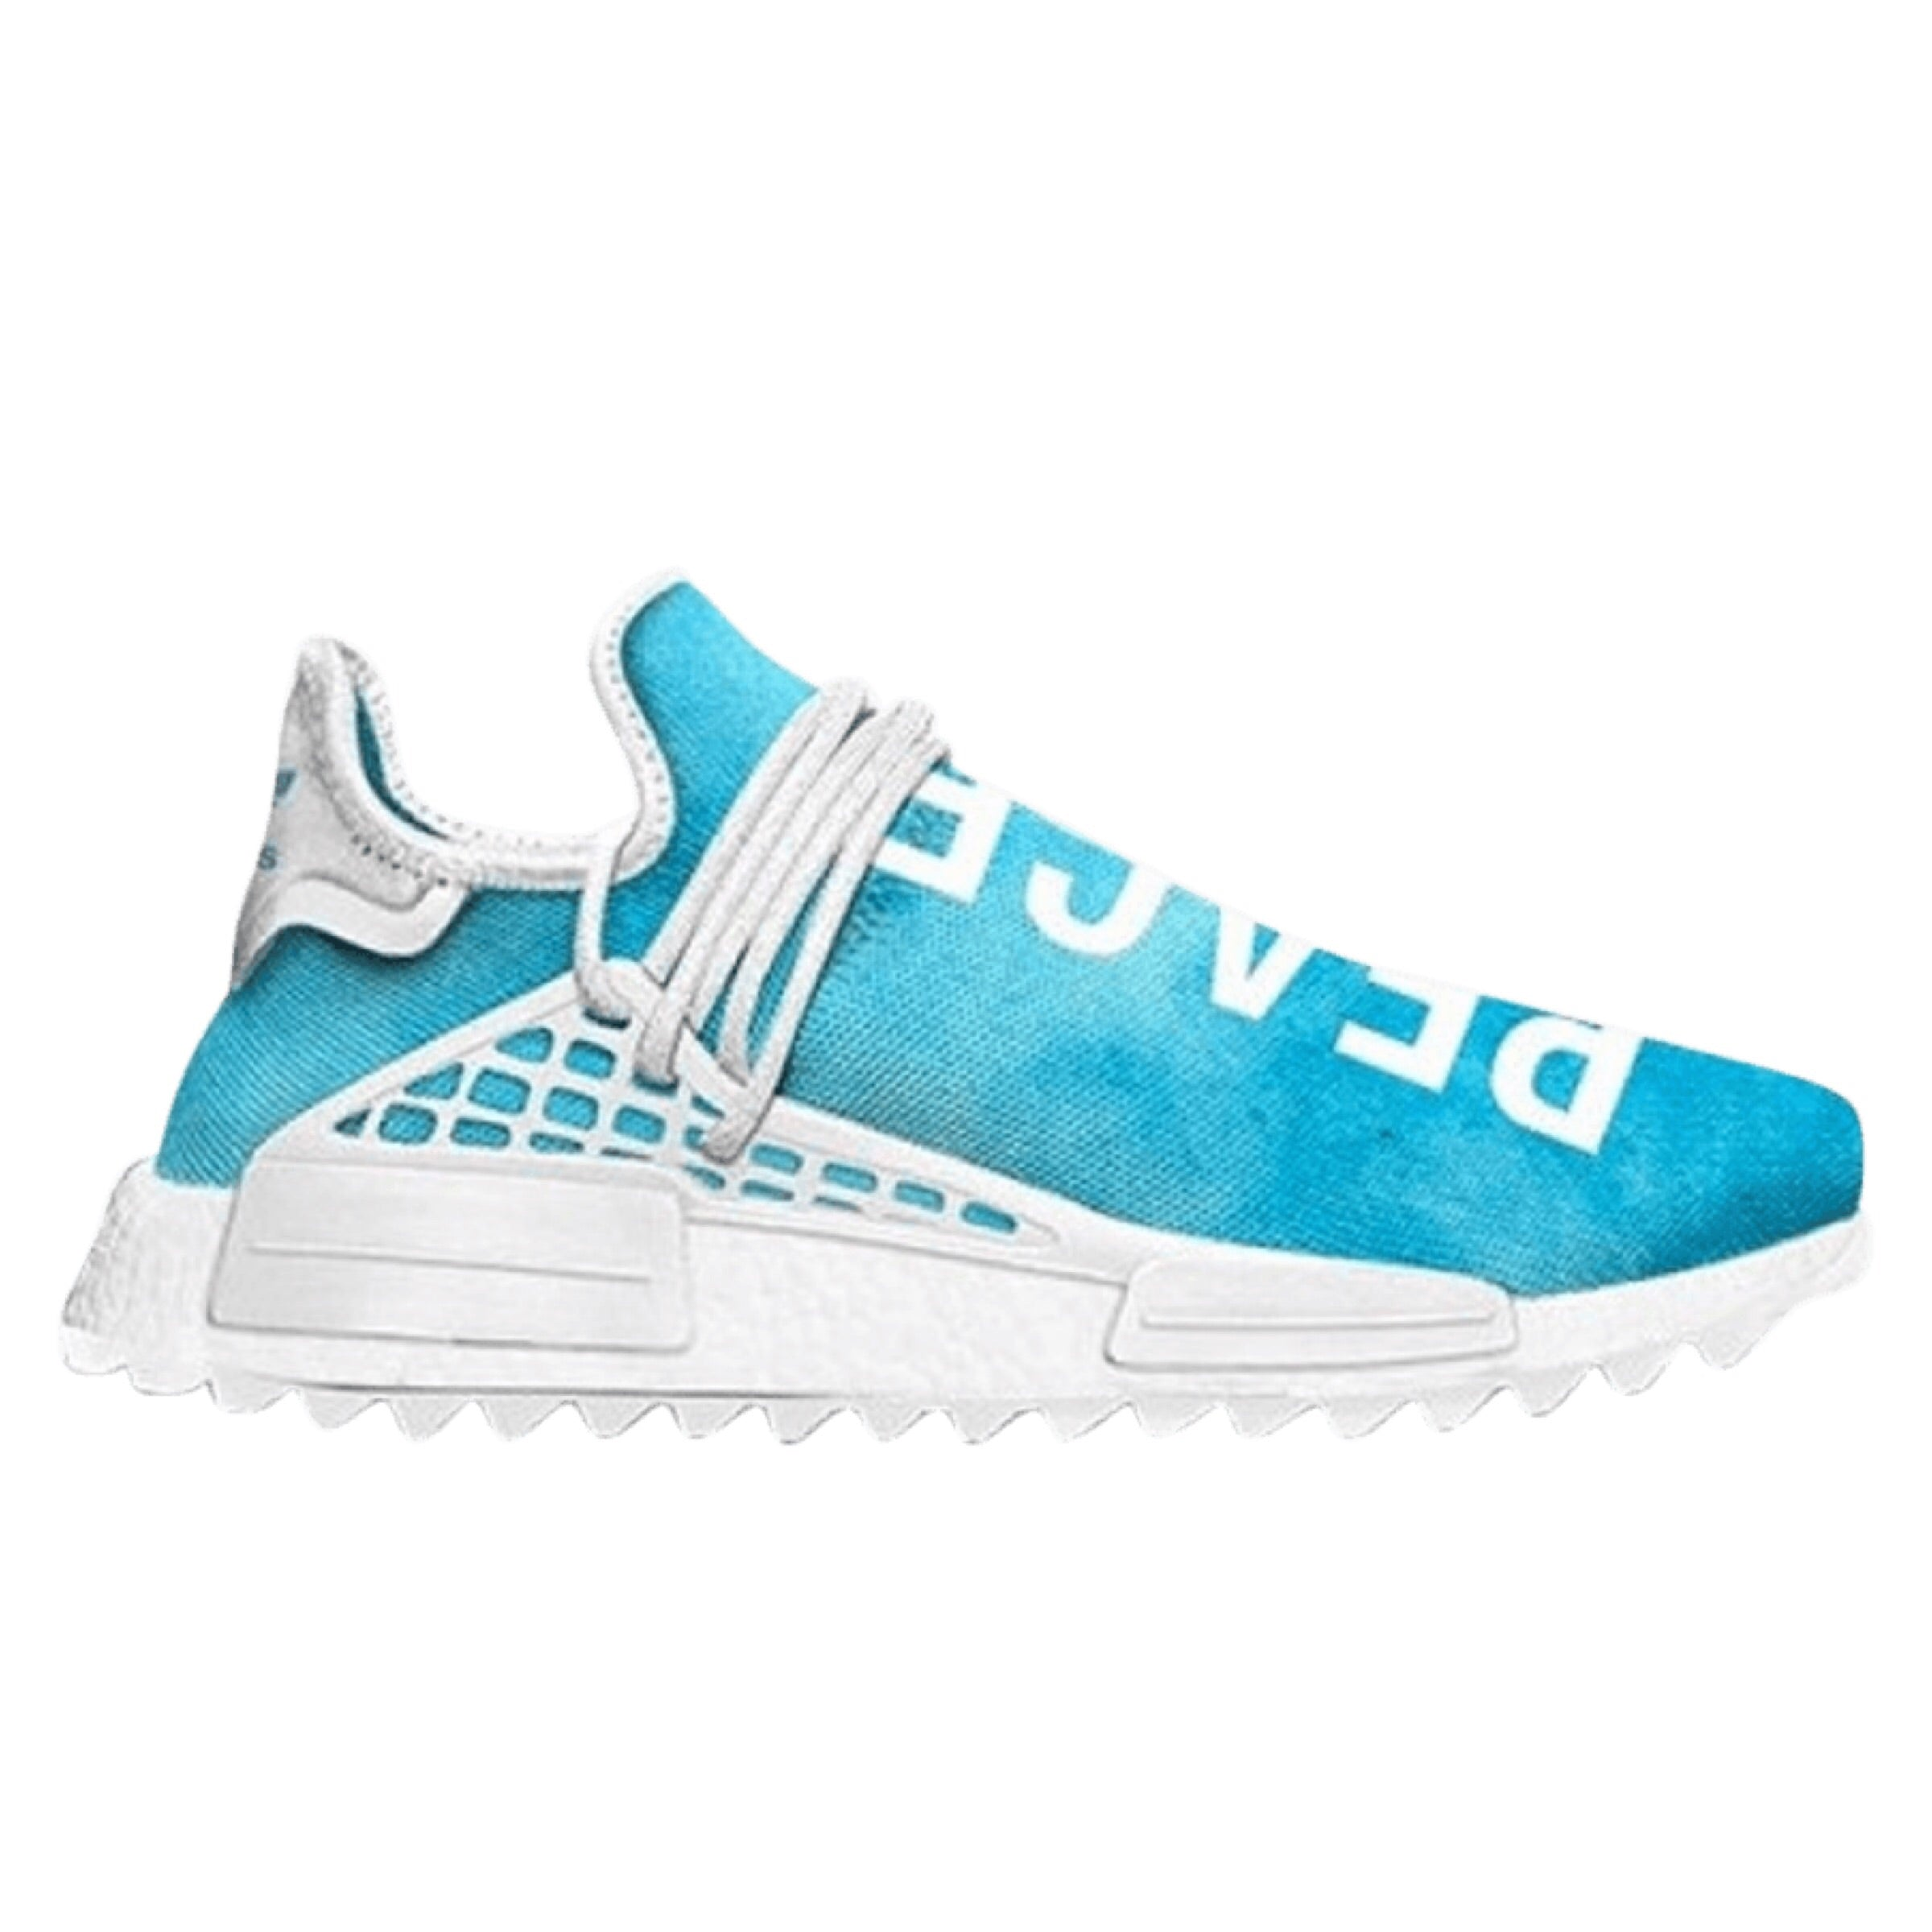 1de5a6628c264 adidas Originals by Pharrell Williams Hu Holi NMD MC China Edition PEACE